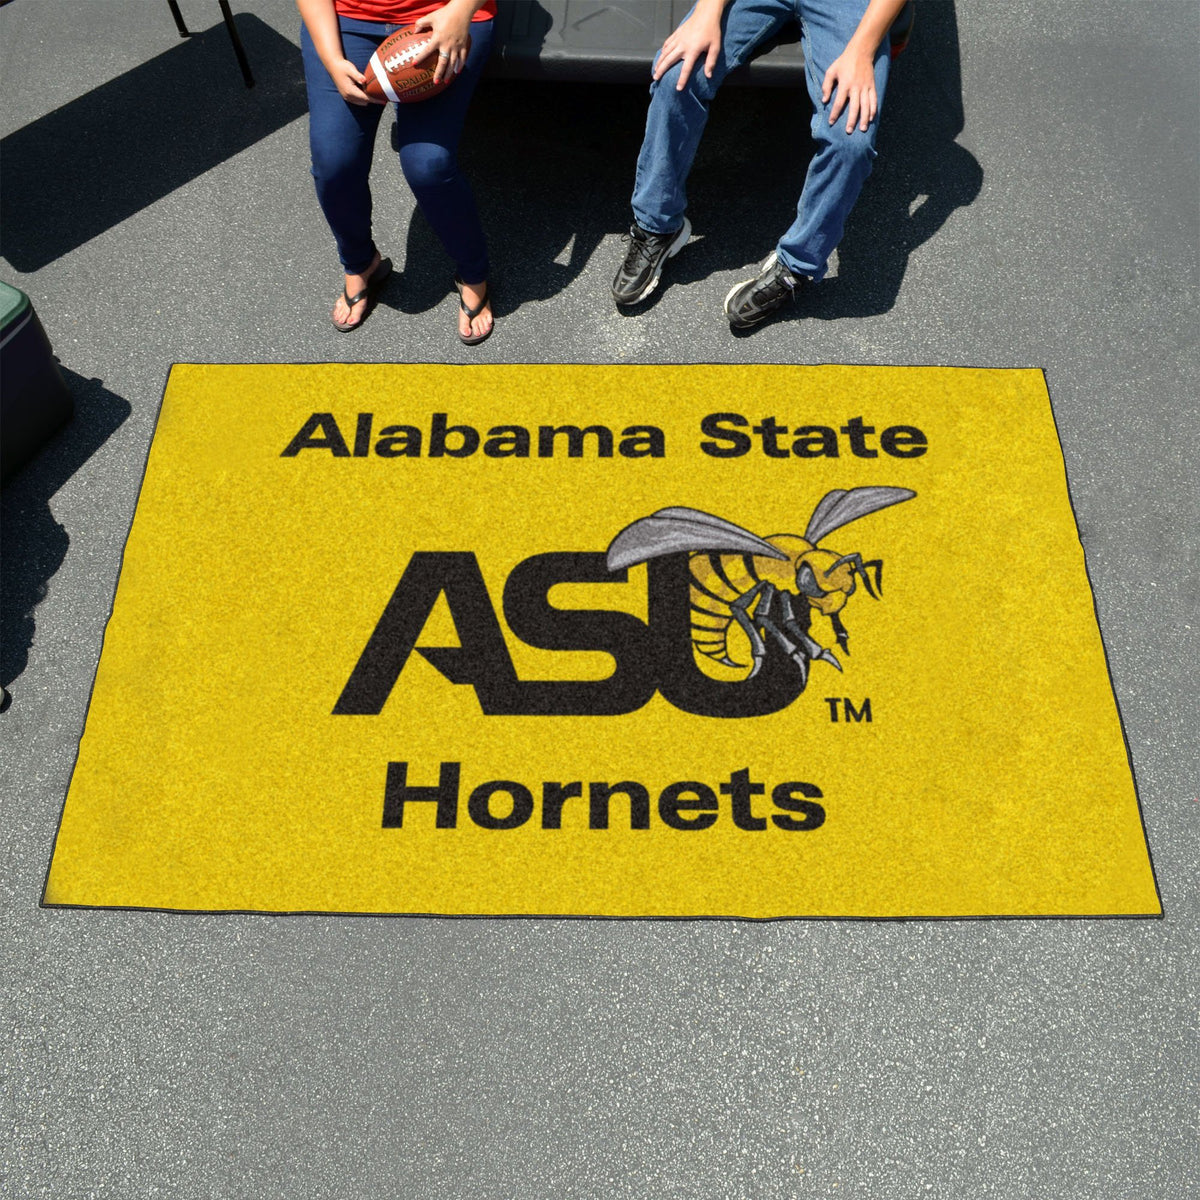 Collegiate - Ulti-Mat: A - L Collegiate Mats, Rectangular Mats, Ulti-Mat, Collegiate, Home Fan Mats Alabama State